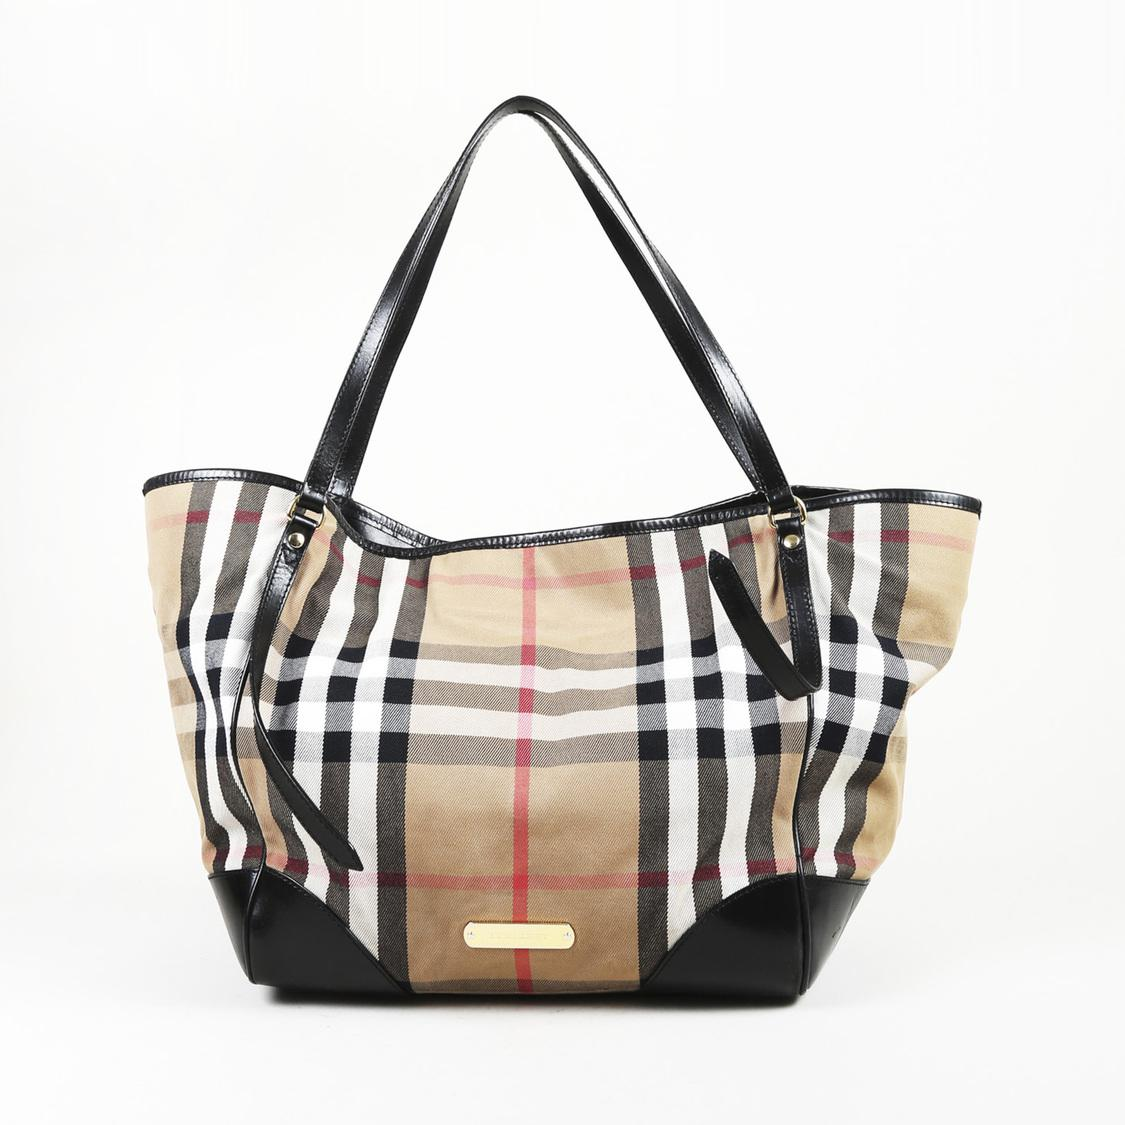 890147a5a293 Lyst - Burberry Canvas